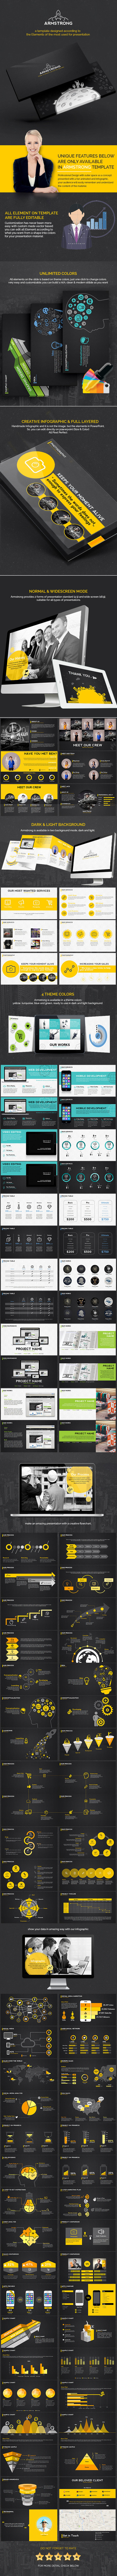 GraphicRiver Armstrong Outer Space Powerpoint Template 8803987